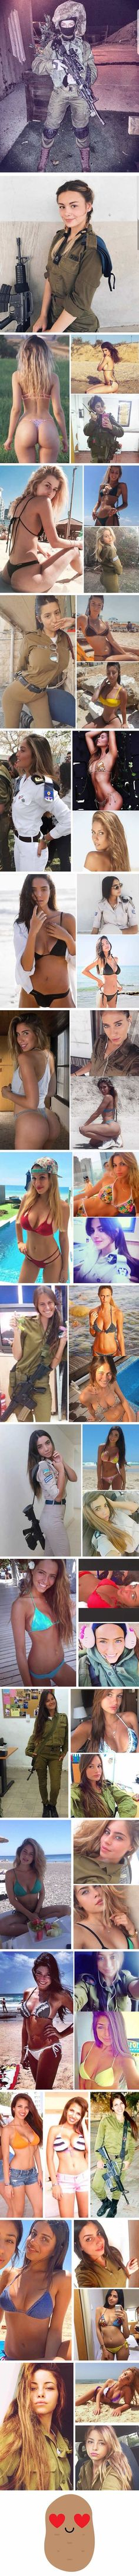 These Israel soldier babes could kill you at first sight